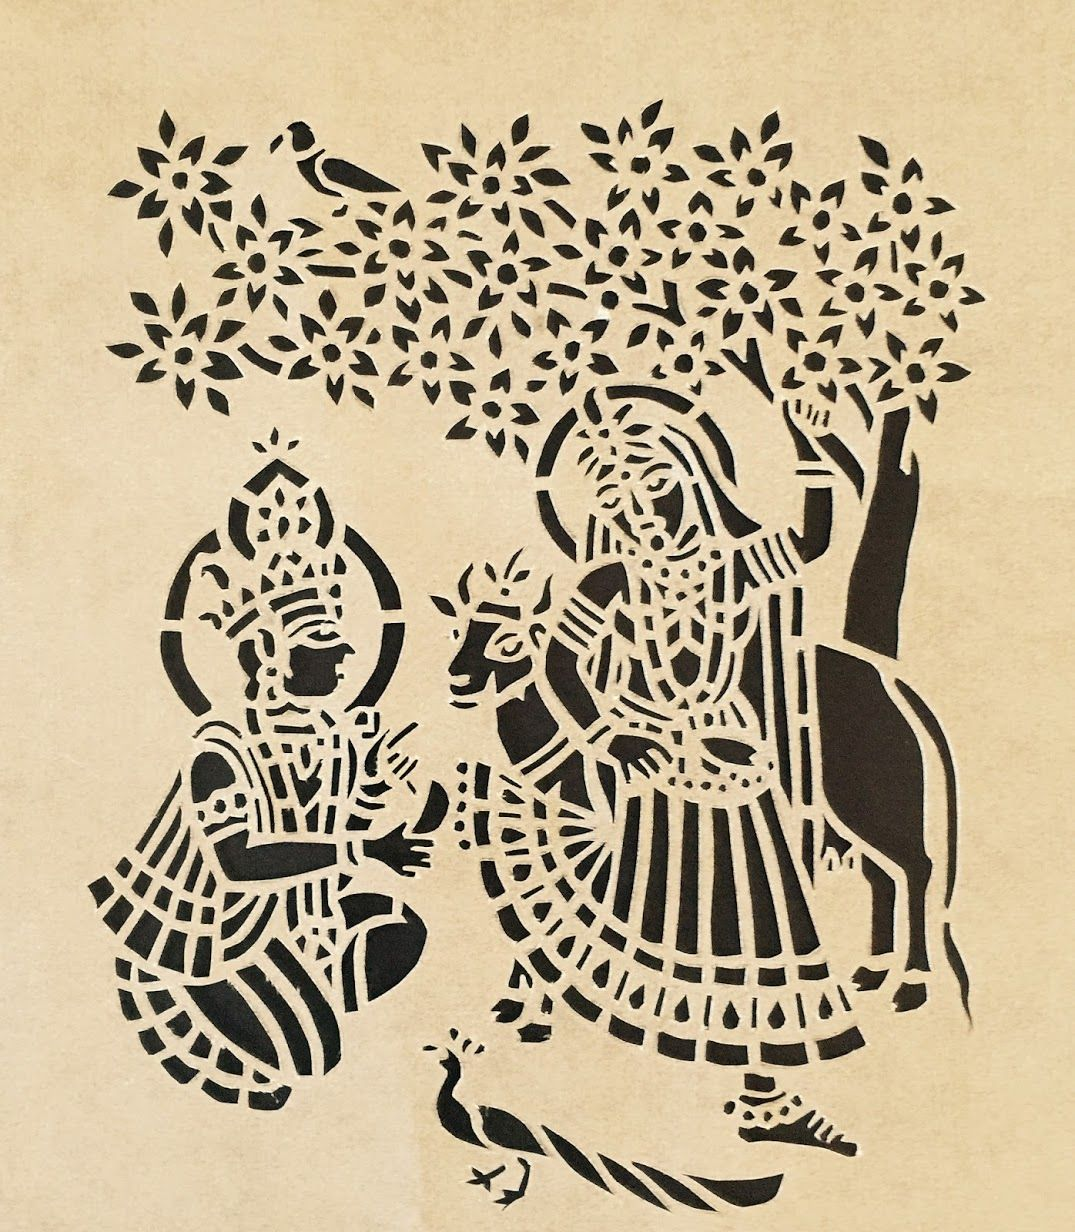 Sanjhi Art | Abstract pencil drawings, Fabric paint designs, Silhouette art